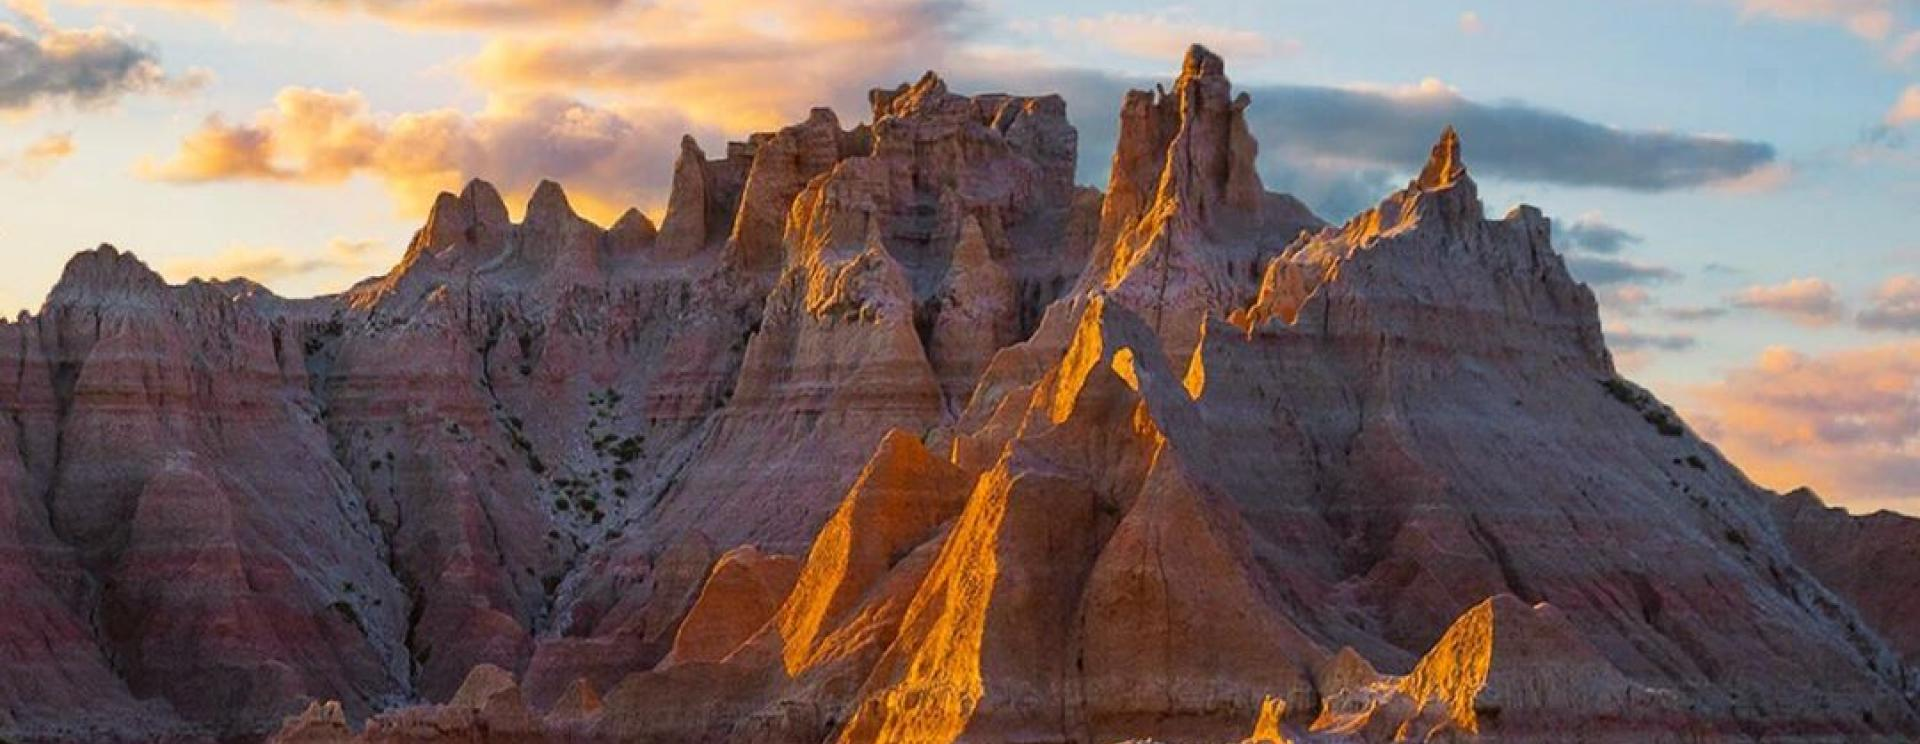 The 5 Most Remarkable Photos of the Black Hills and Badlands in September 2019